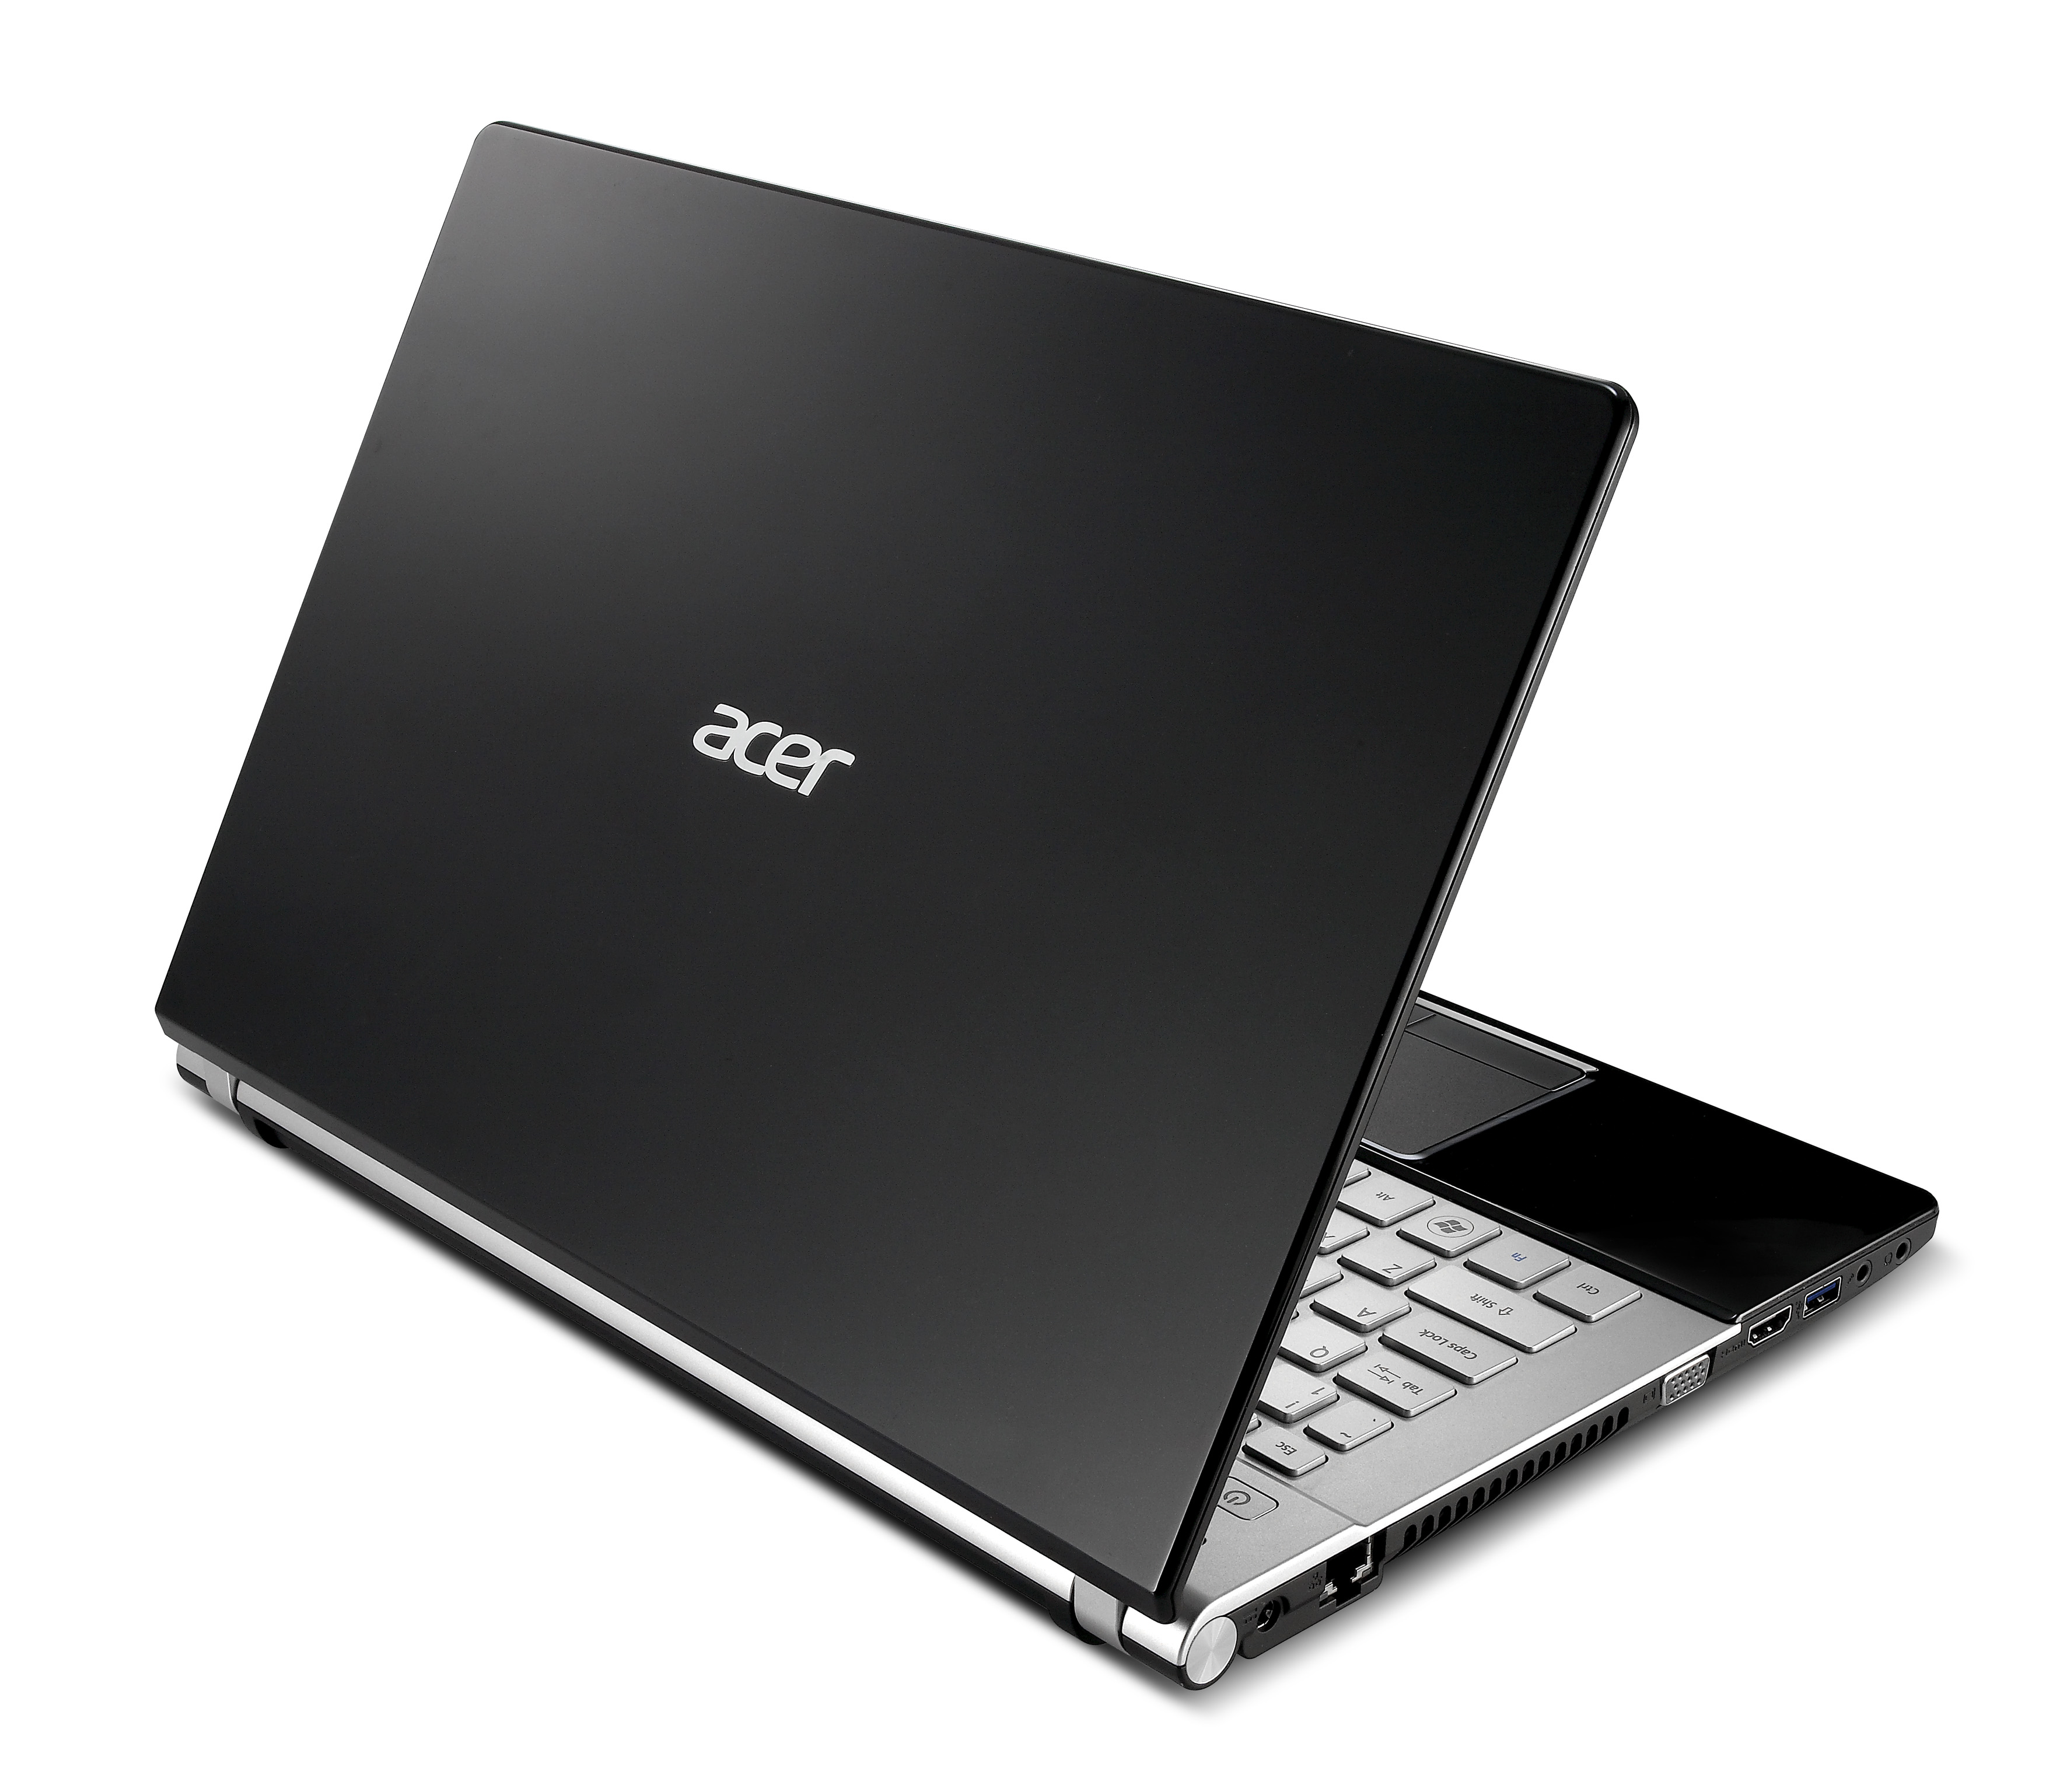 Acer Official Site